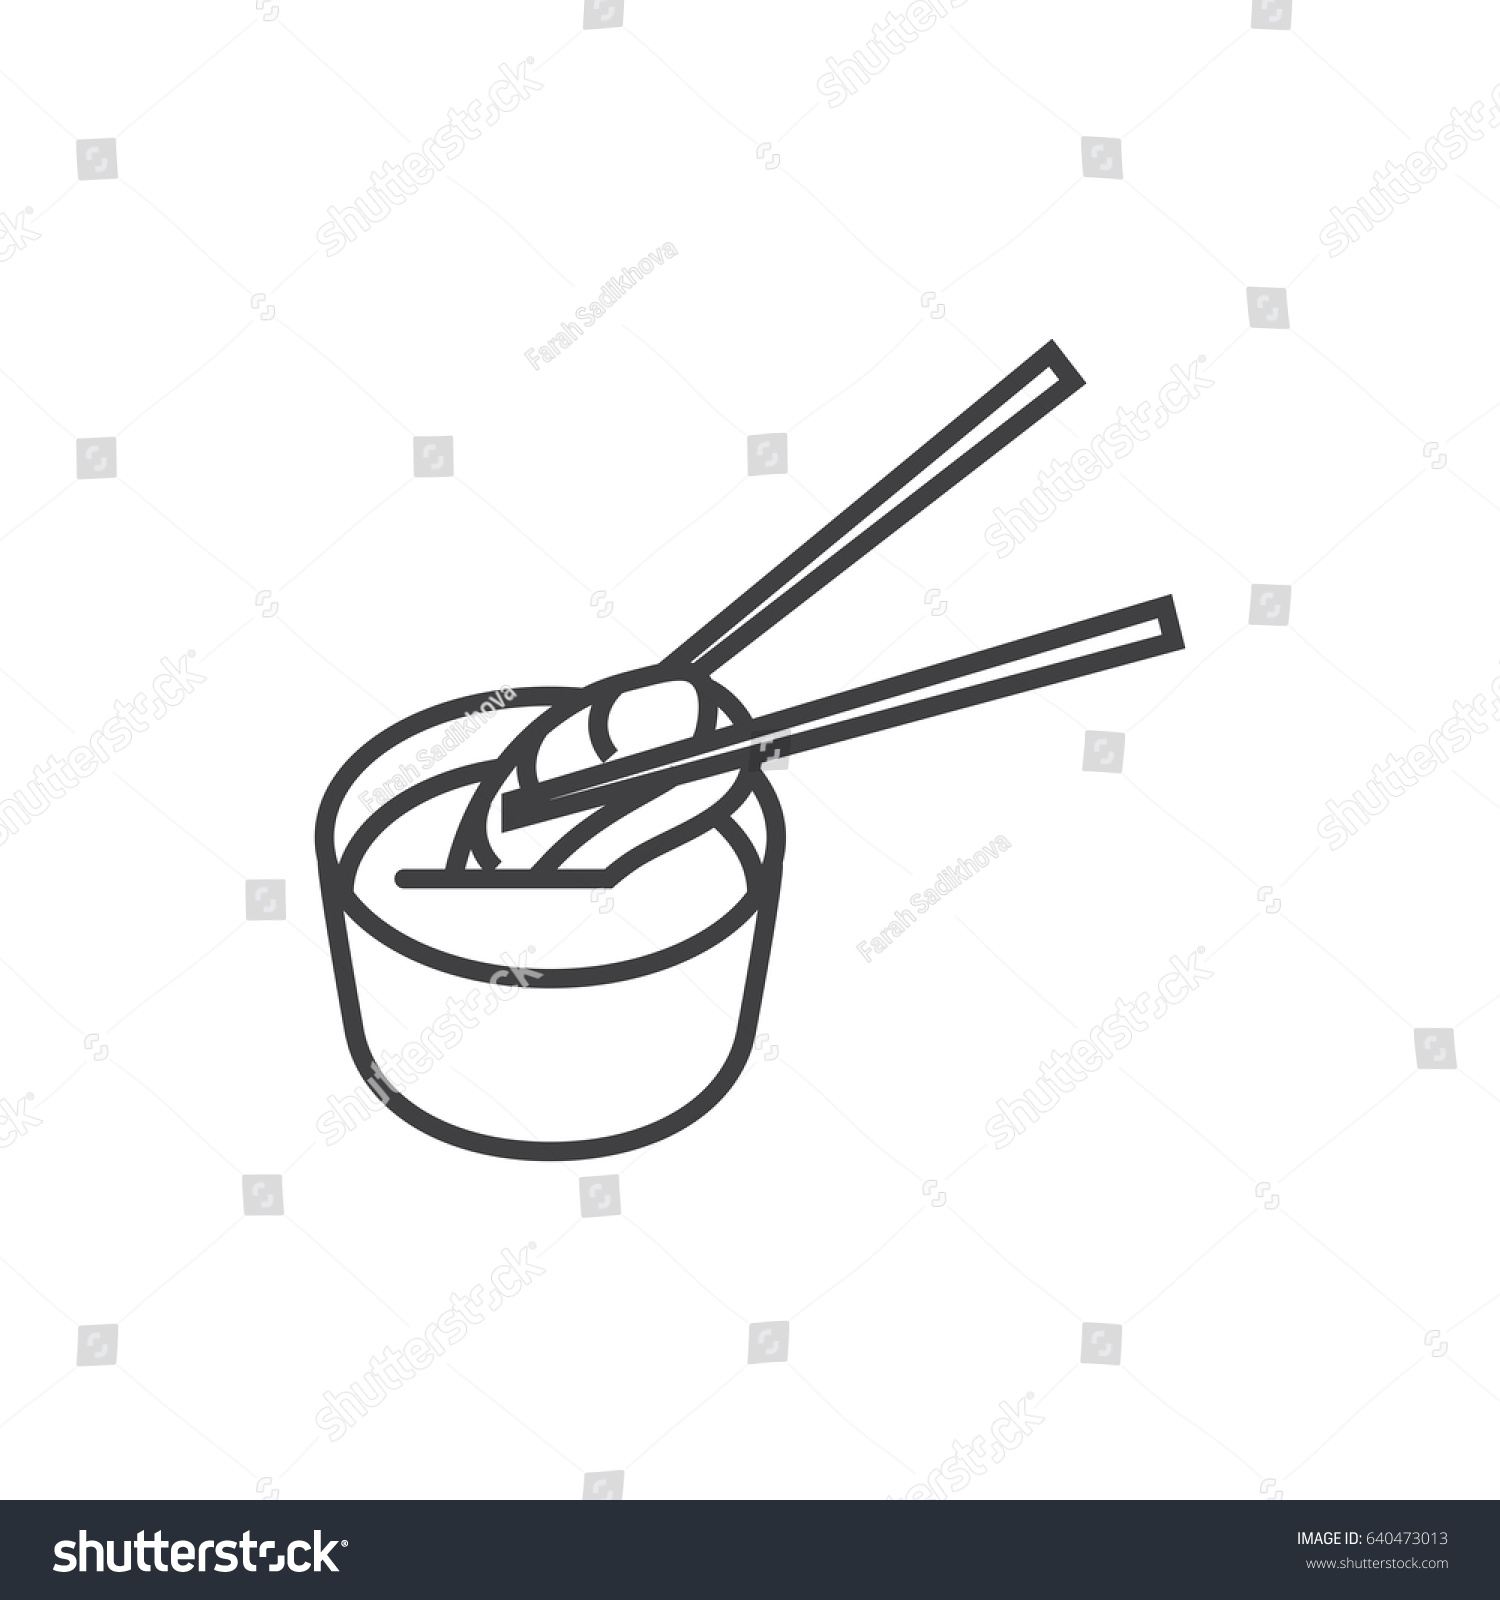 Sashimi Sushi Dunked Soy Sauce Outline Stock Vector 2018 640473013